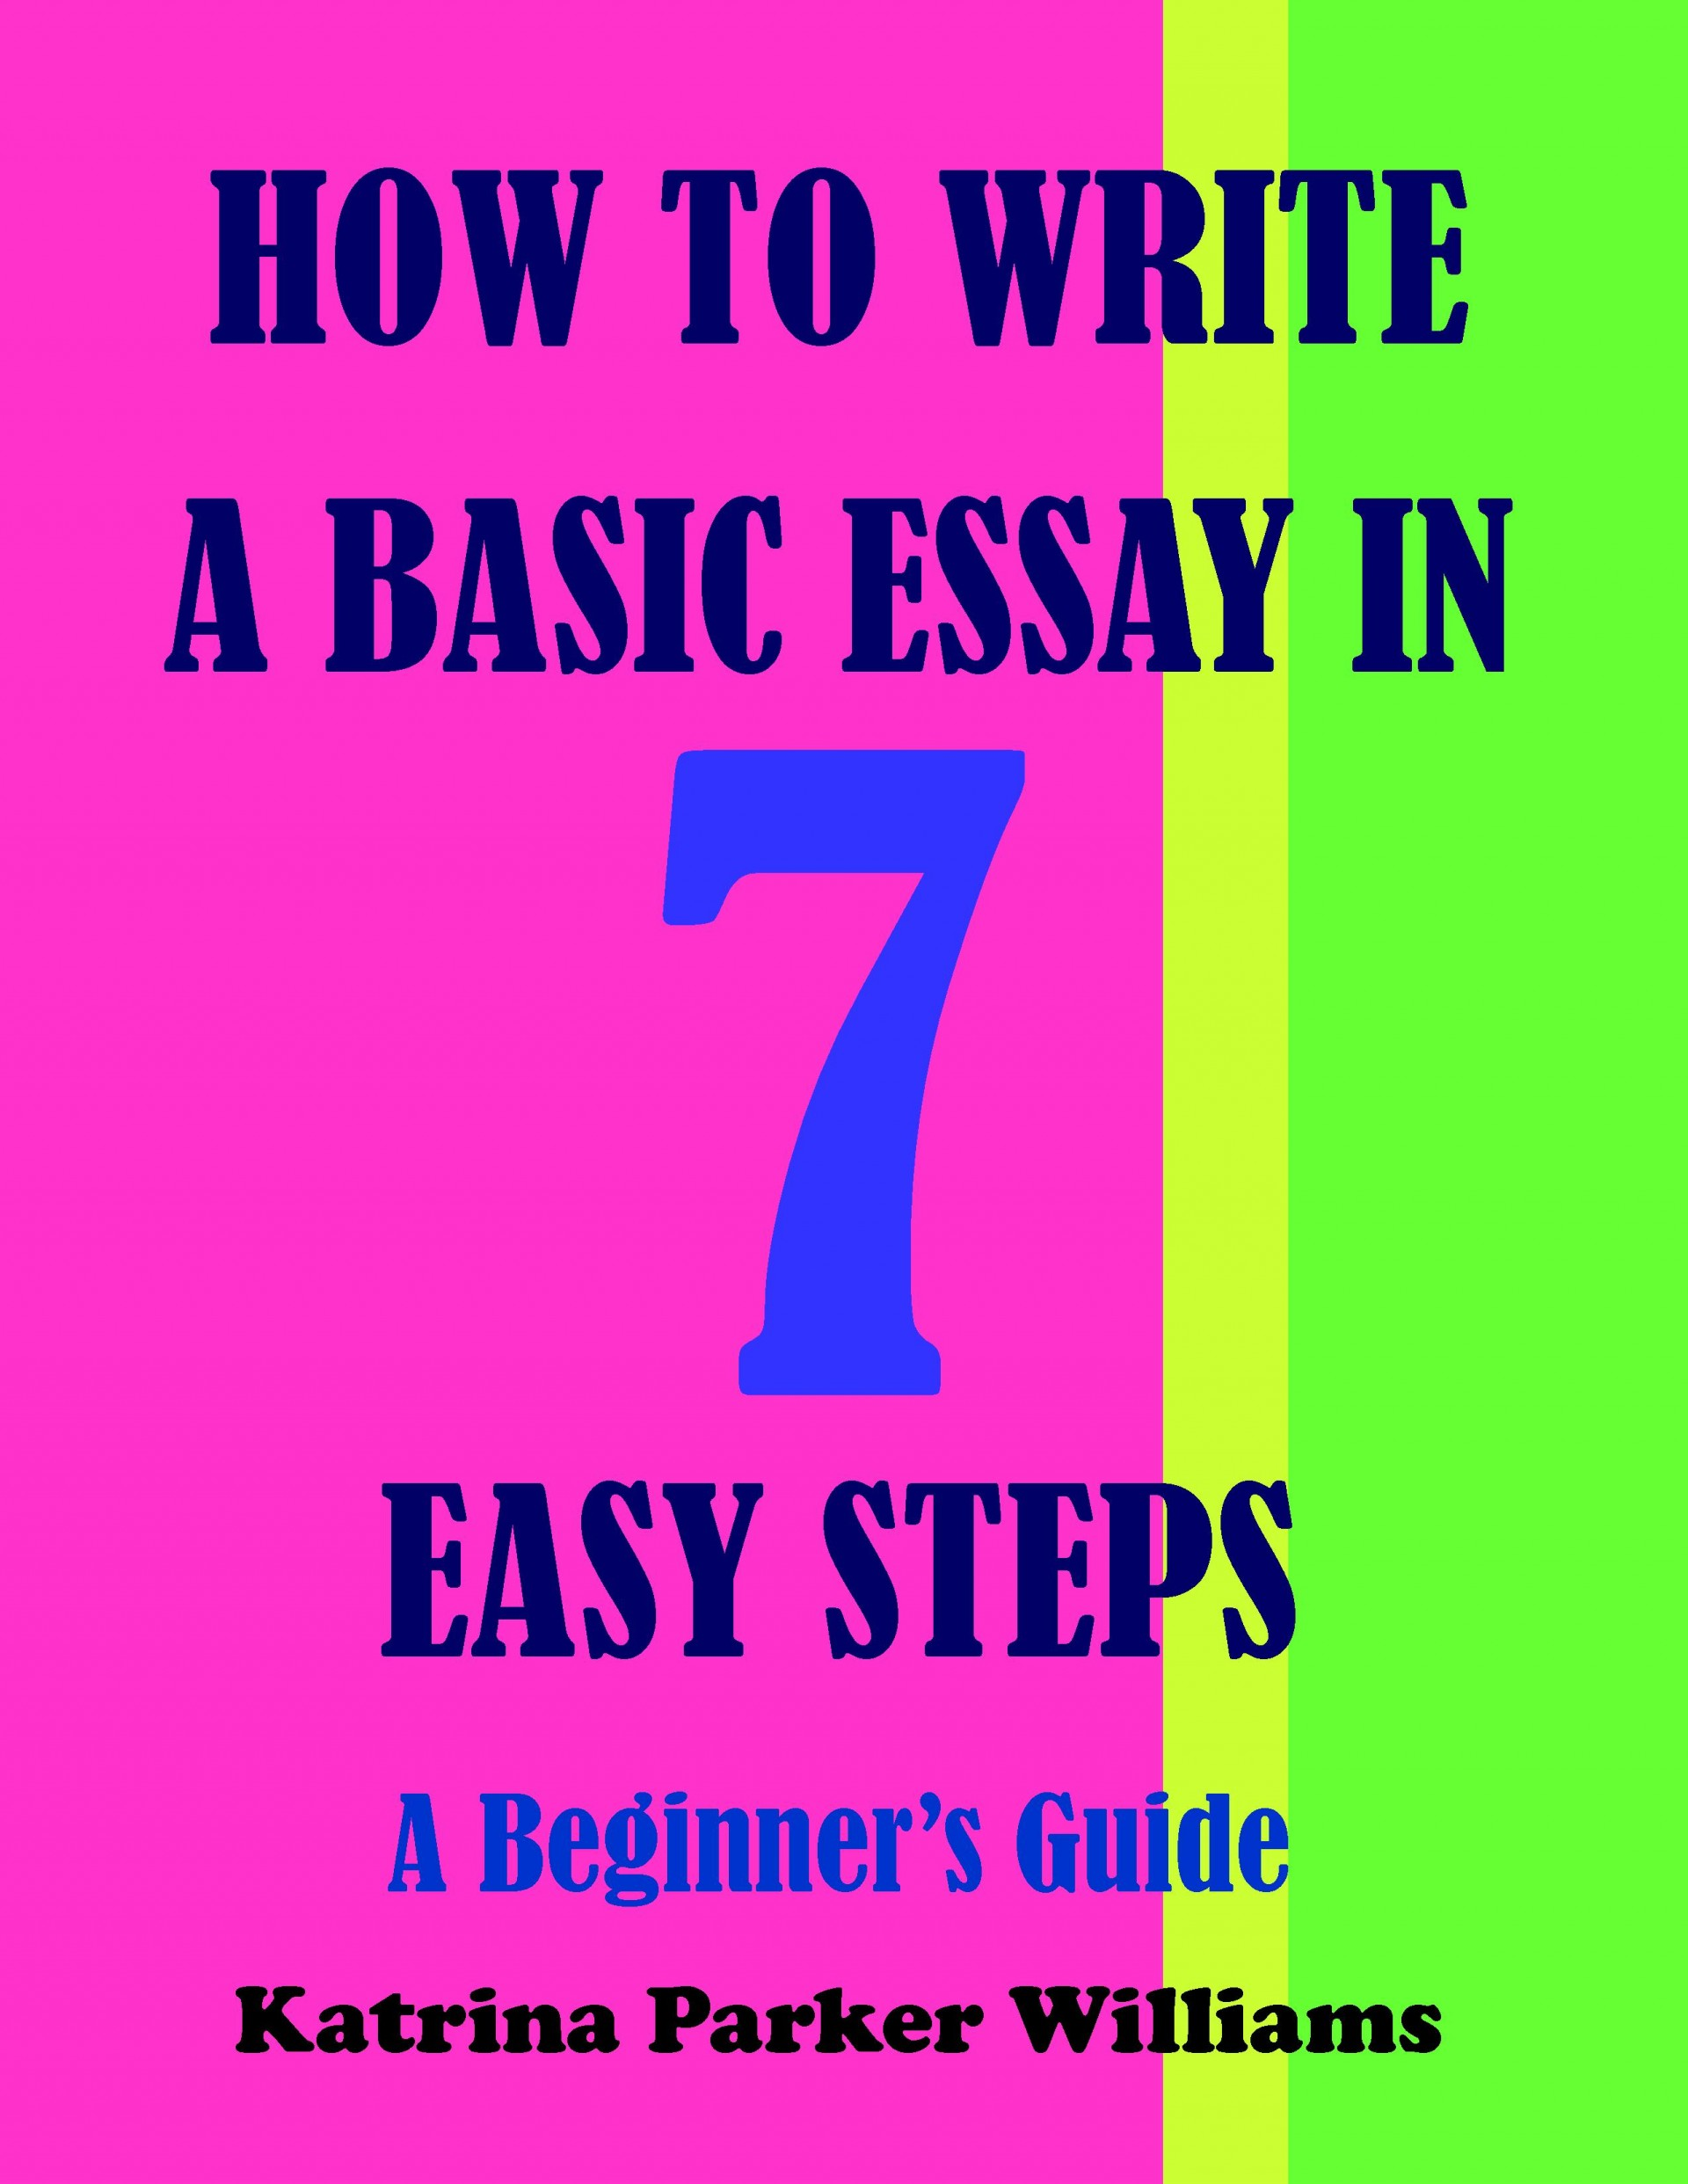 014 How To Write Basic Essay In Seven Easy Steps Writing An Stunning 4th Grade Middle School Conclusion 1920